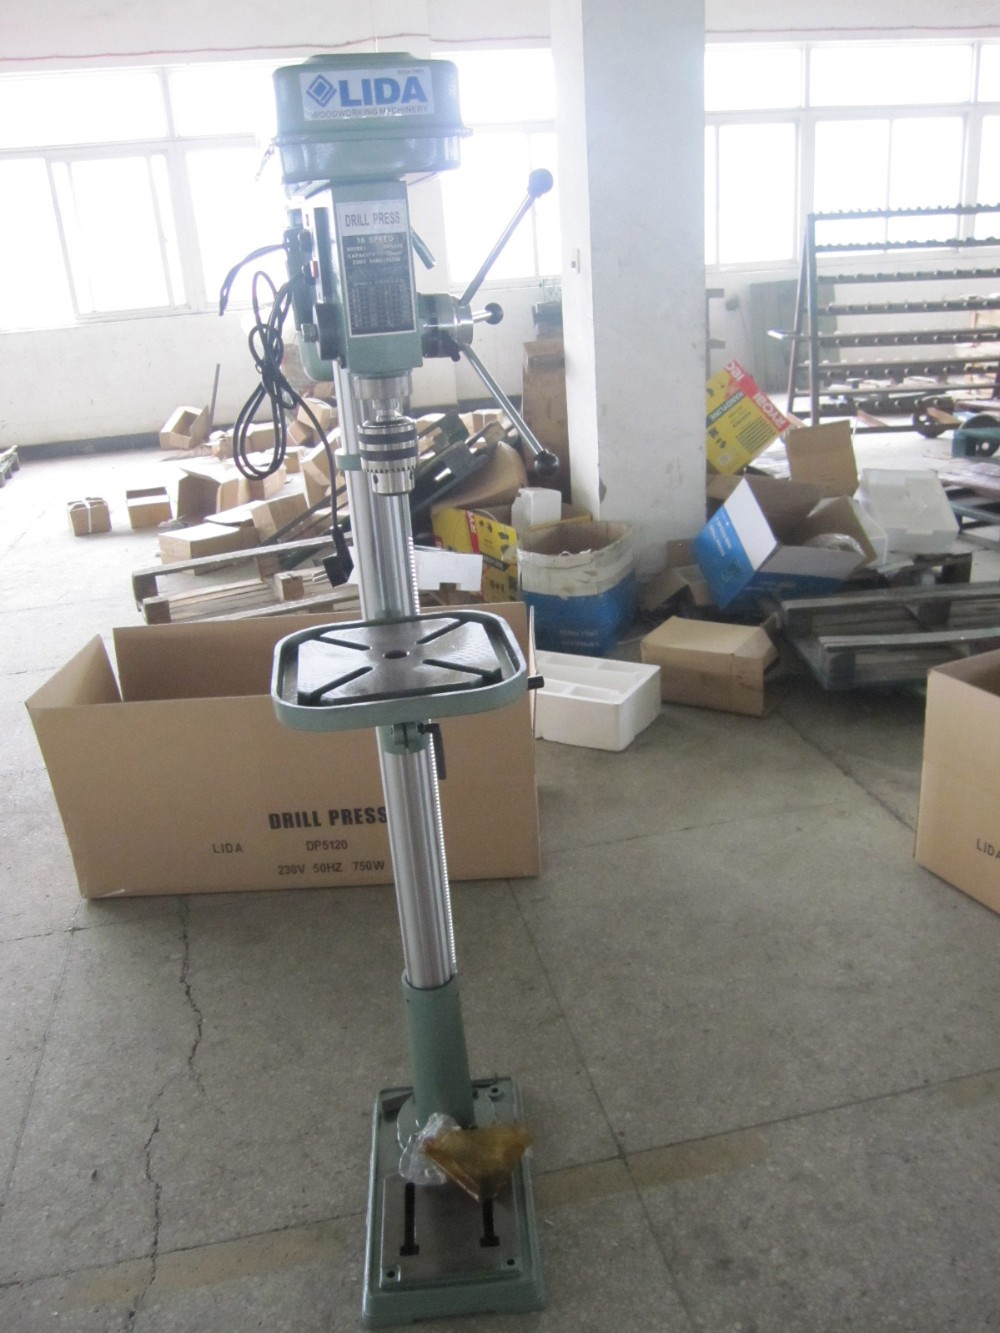 Zicar Dp5120 Drilling Capacity 5 20mm Bench Drilling Press Machine For Sale Buy Bench Drill